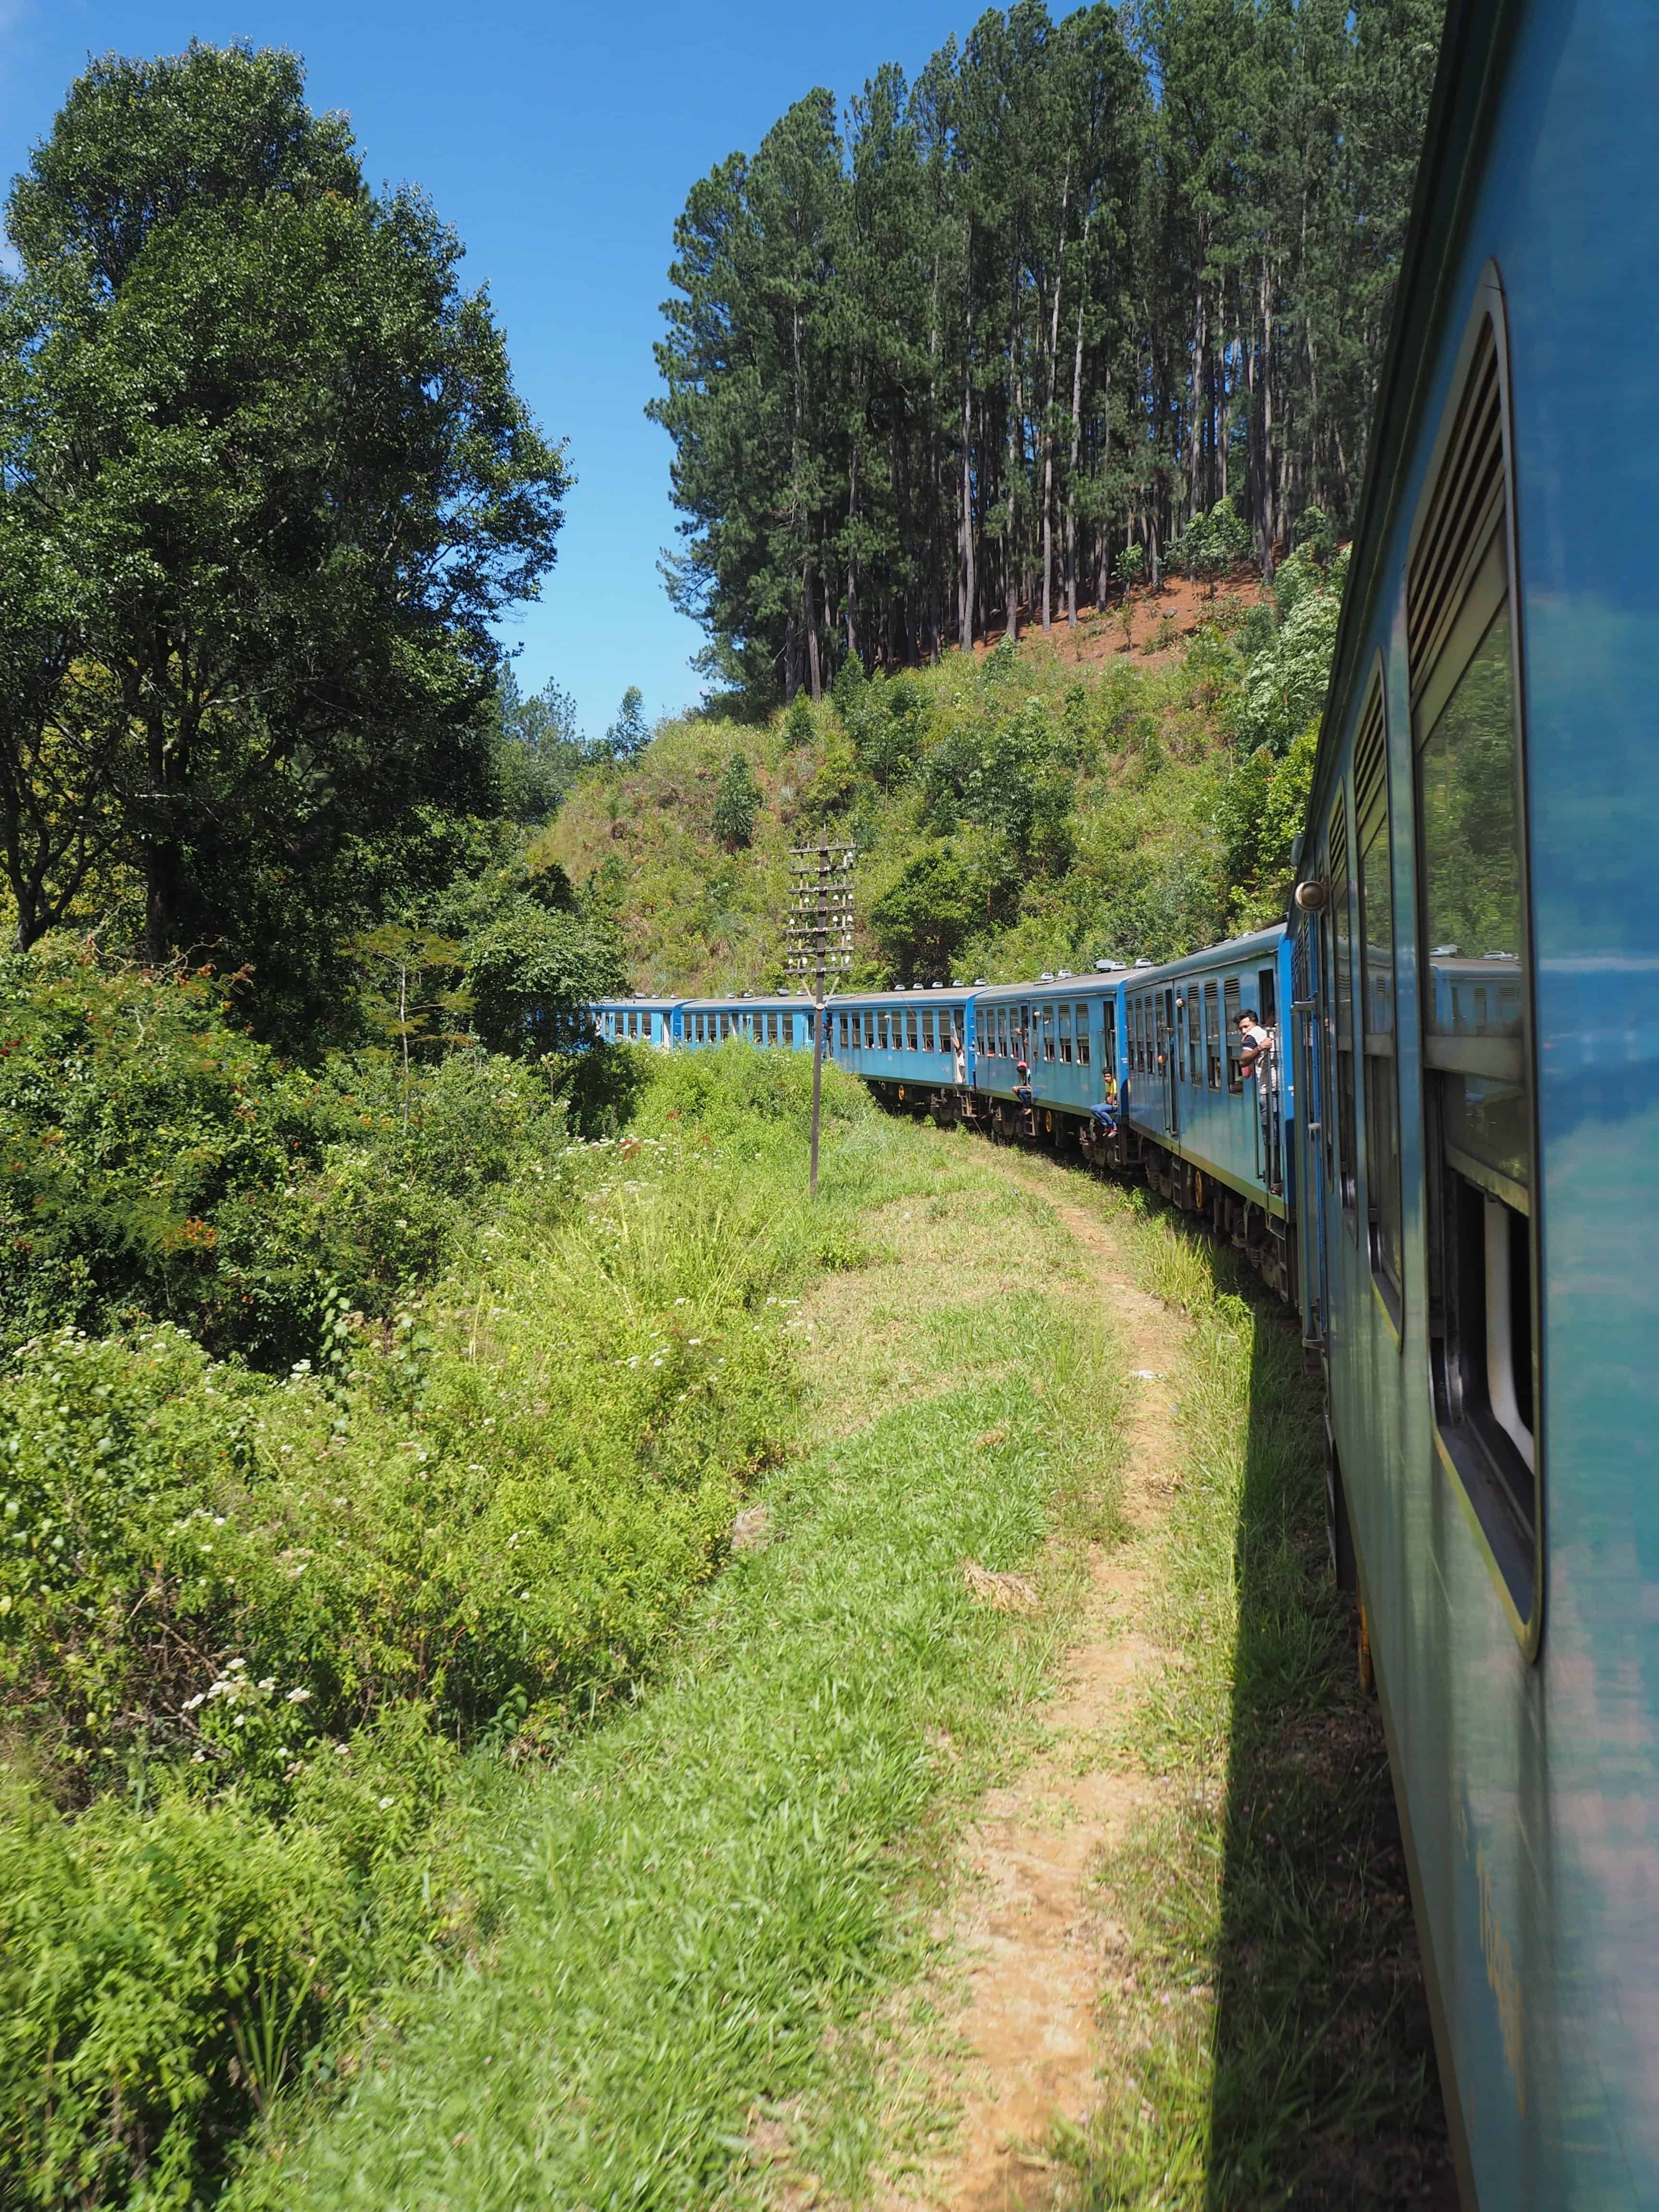 Top 10 Tips For The Famous Blue Trains In Sri Lanka All You Need